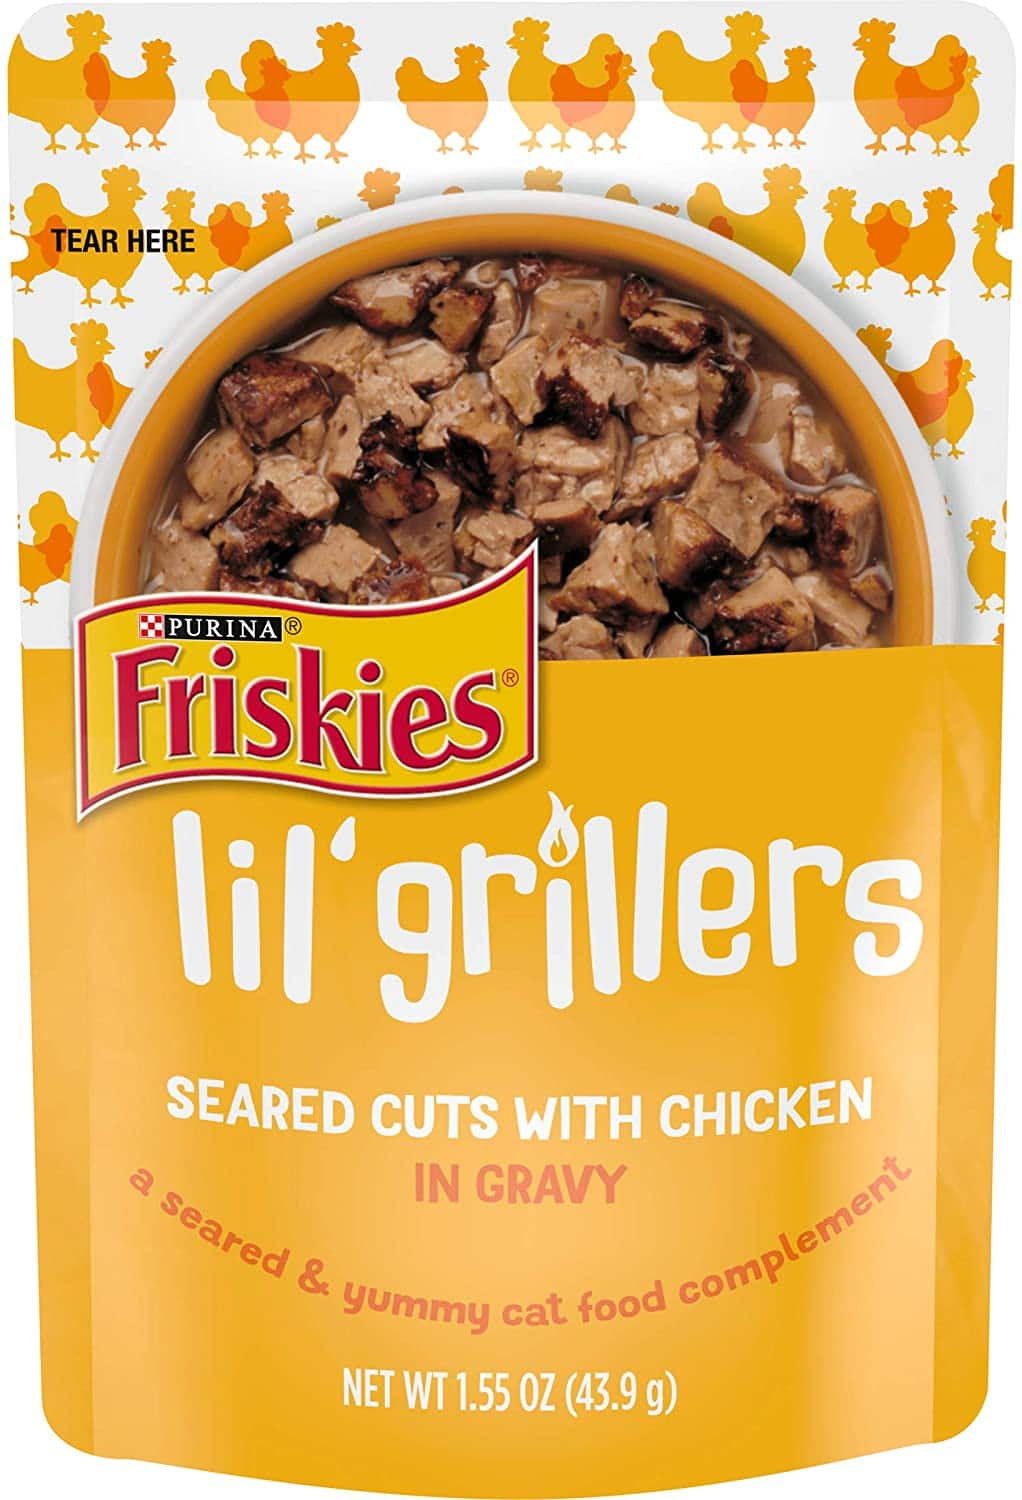 16-Pack 1.55-Oz Friskies Lil' Grillers Wet Cat Food Pouches (Seared Cuts w/ Chicken) $7.02 + Free S&H w/ orders $49+ ~ Chewy